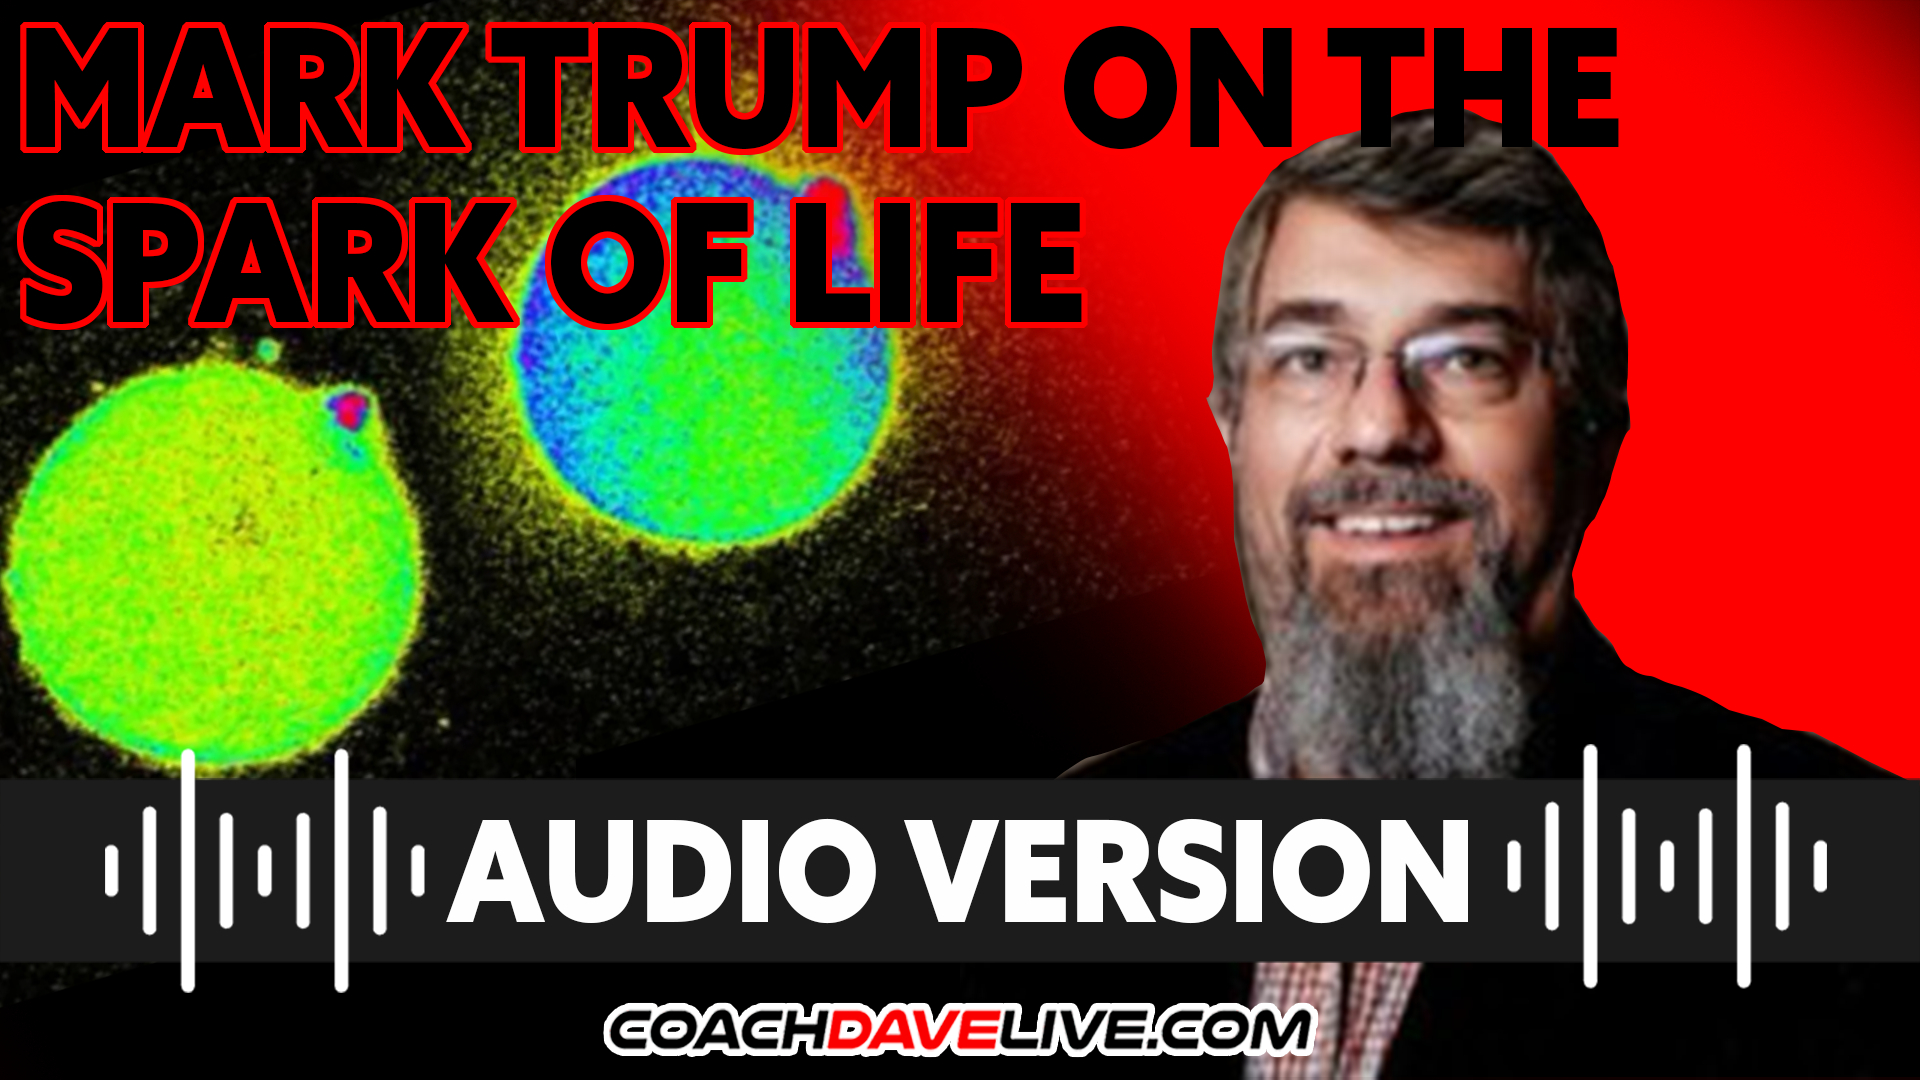 Coach Dave LIVE | 10-1-2021 | MARK TRUMP ON THE SPARK OF LIFE - AUDIO ONLY